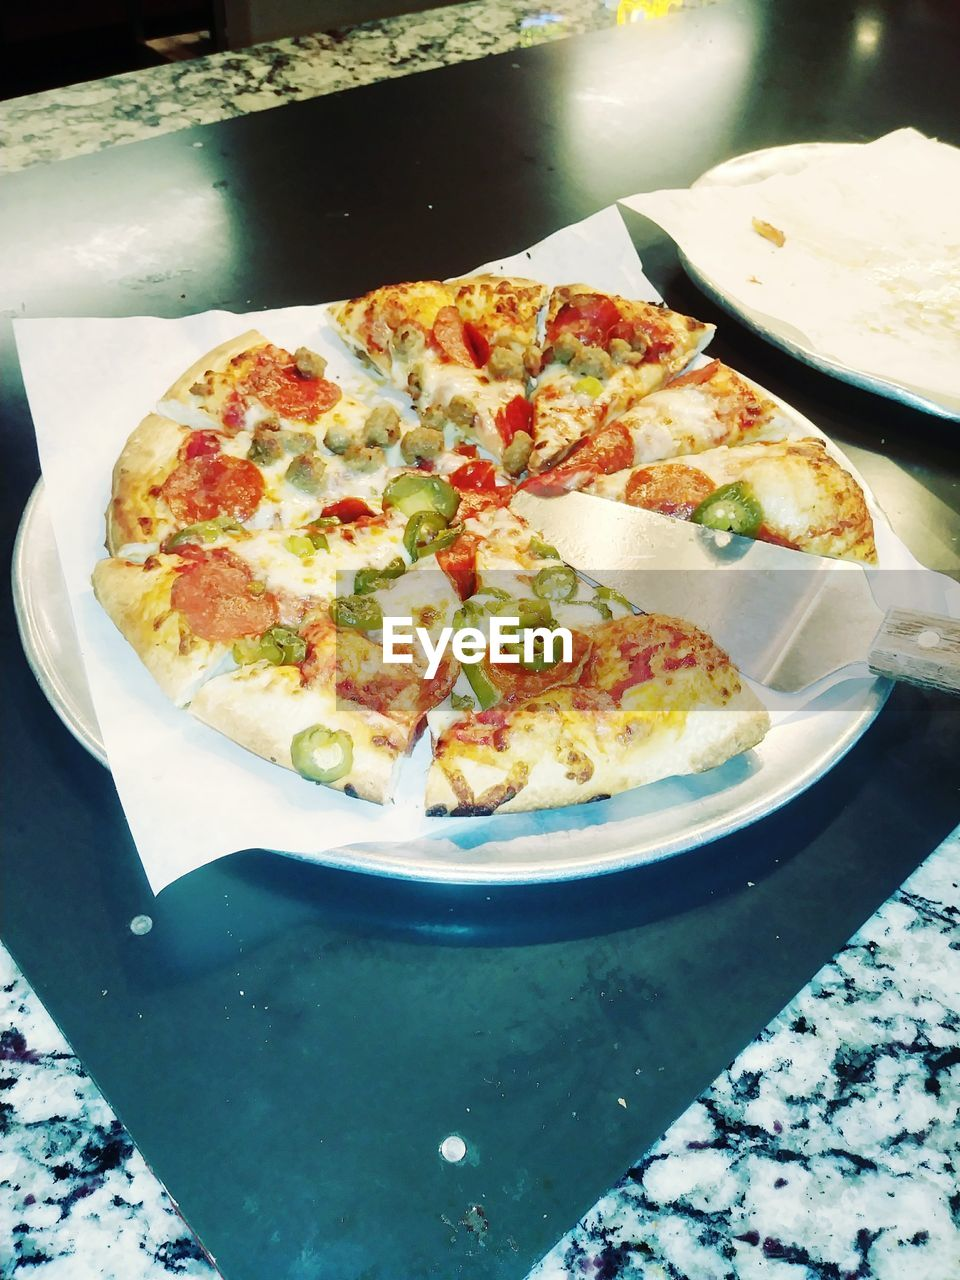 food, food and drink, ready-to-eat, freshness, table, plate, still life, pizza, indoors, serving size, high angle view, indulgence, no people, close-up, healthy eating, meal, snack, wellbeing, vegetable, temptation, crockery, tray